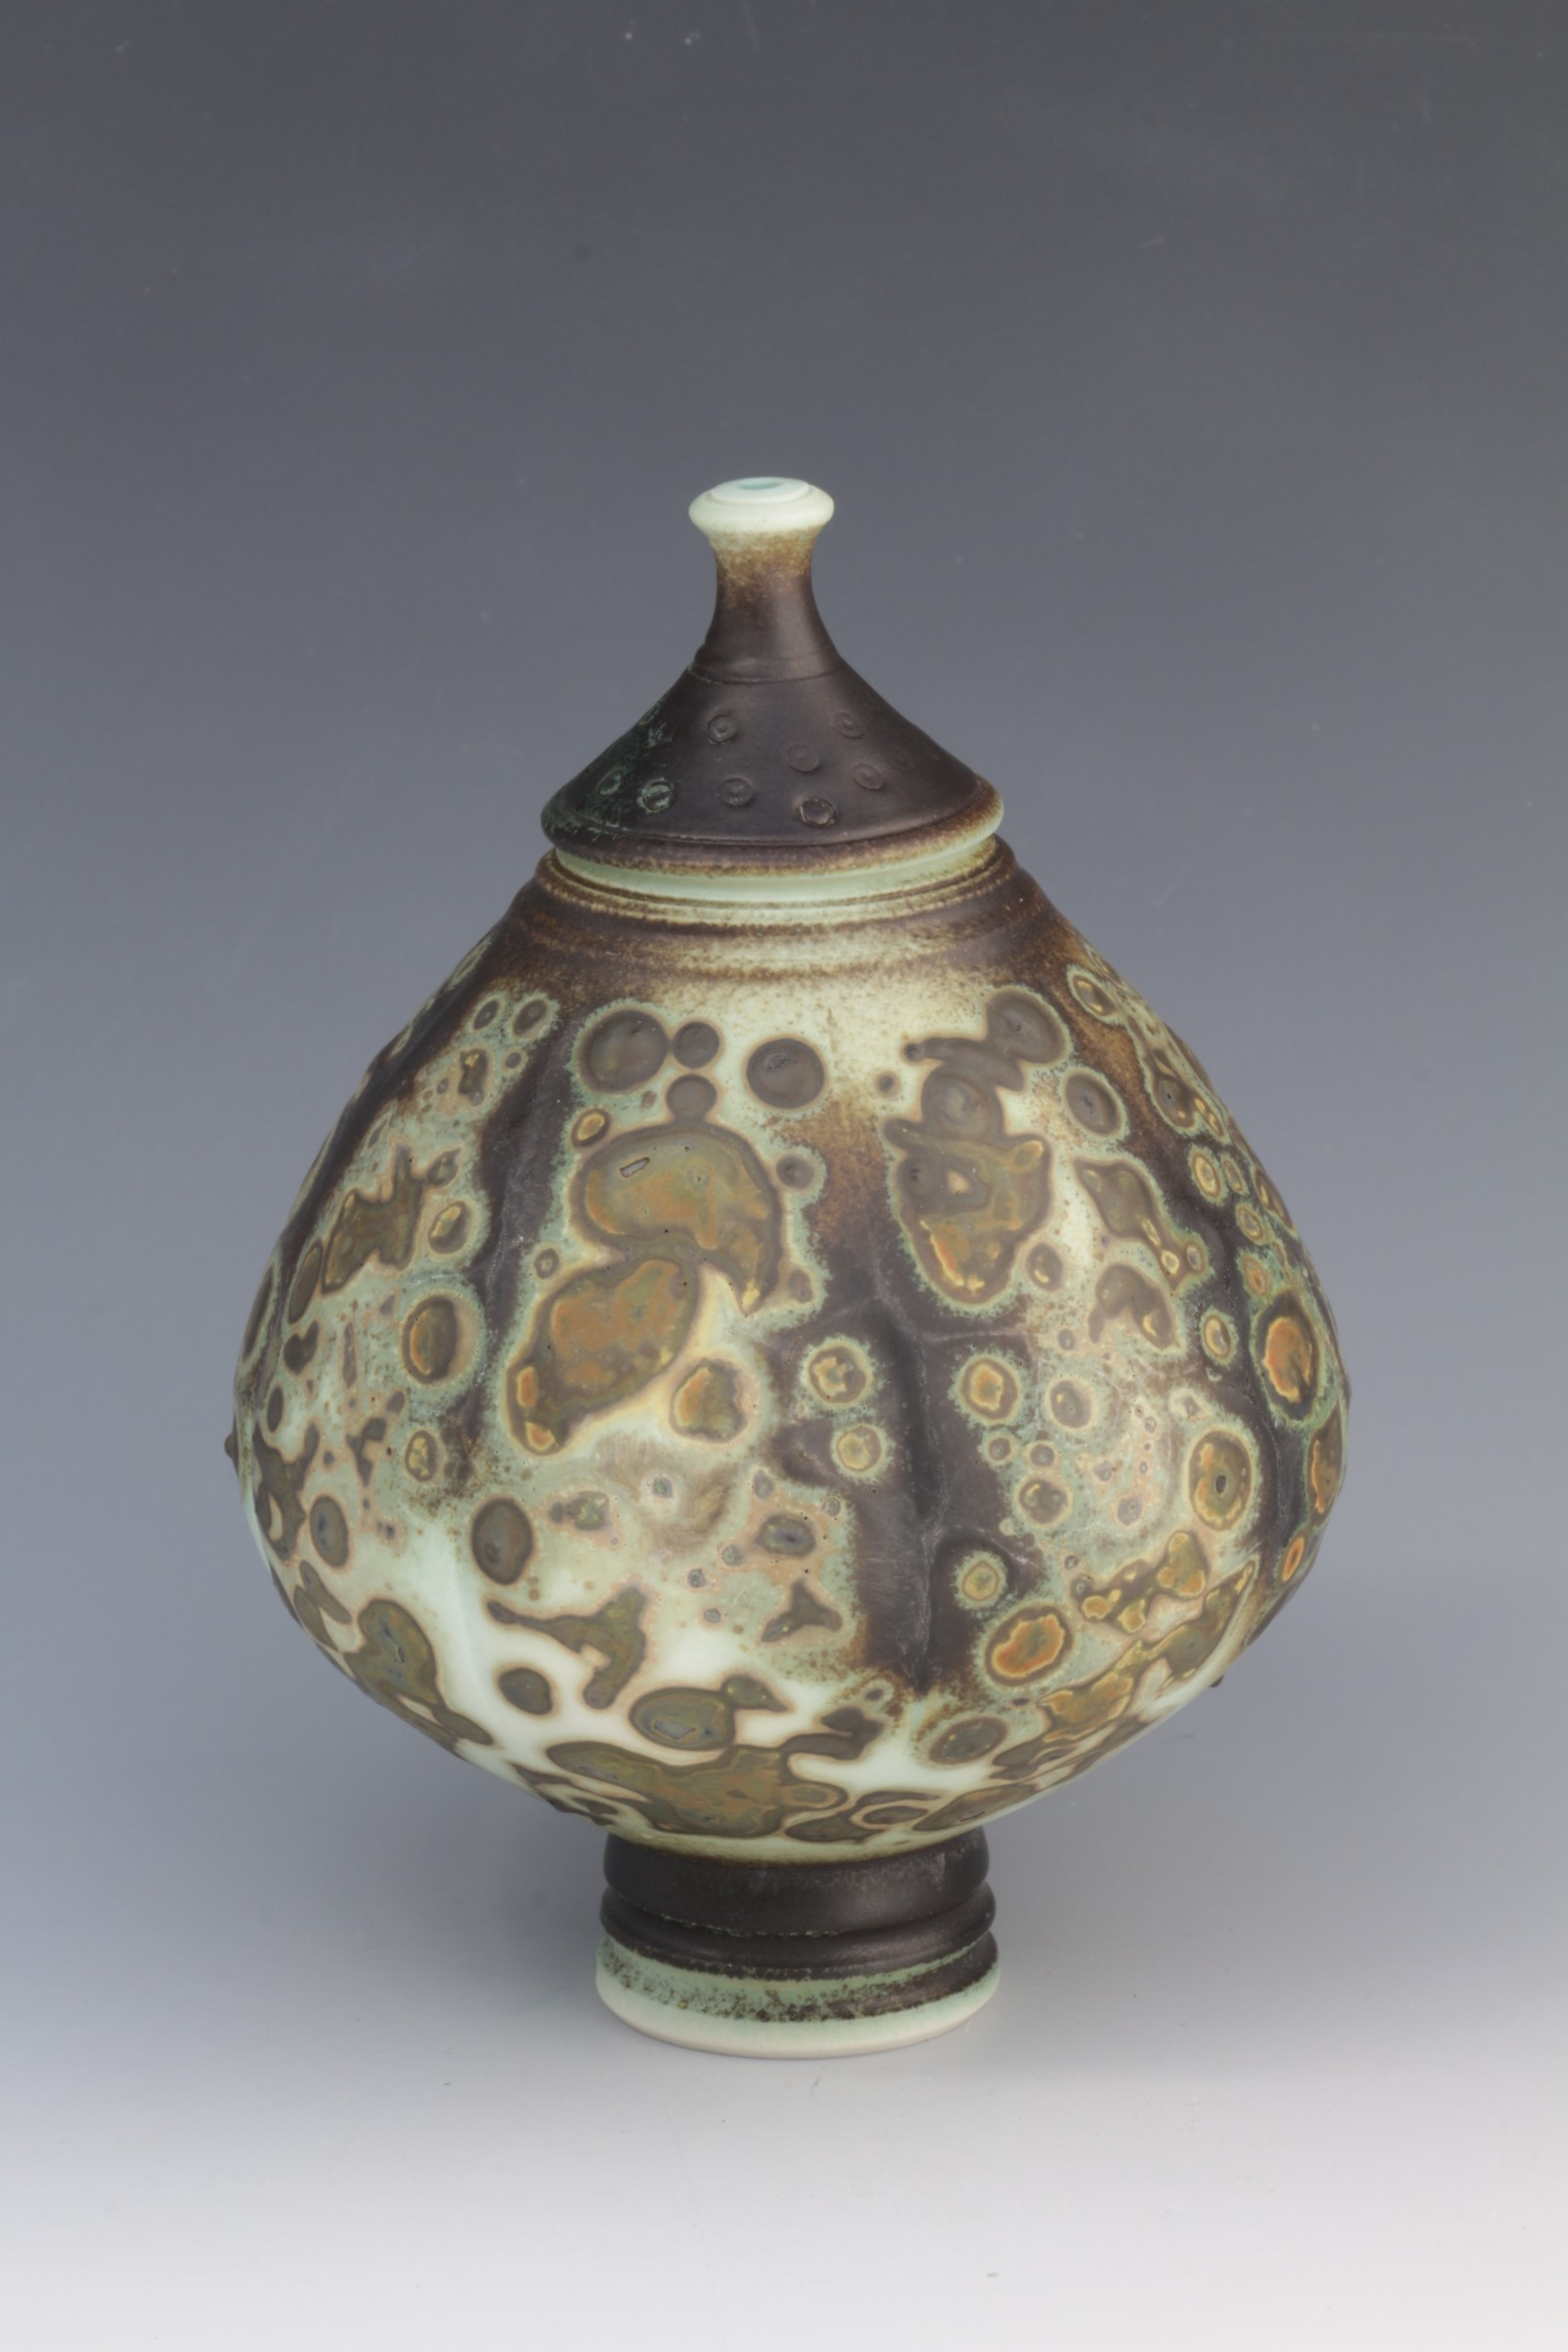 "<span class=""link fancybox-details-link""><a href=""/artists/61-geoffrey-swindell/works/6414-geoffrey-swindell-lidded-pot/"">View Detail Page</a></span><div class=""artist""><strong>Geoffrey Swindell</strong></div> <div class=""title""><em>Lidded Pot </em></div> <div class=""copyright_line"">Ownart £17.50 x 10 Months 0% APR</div>"